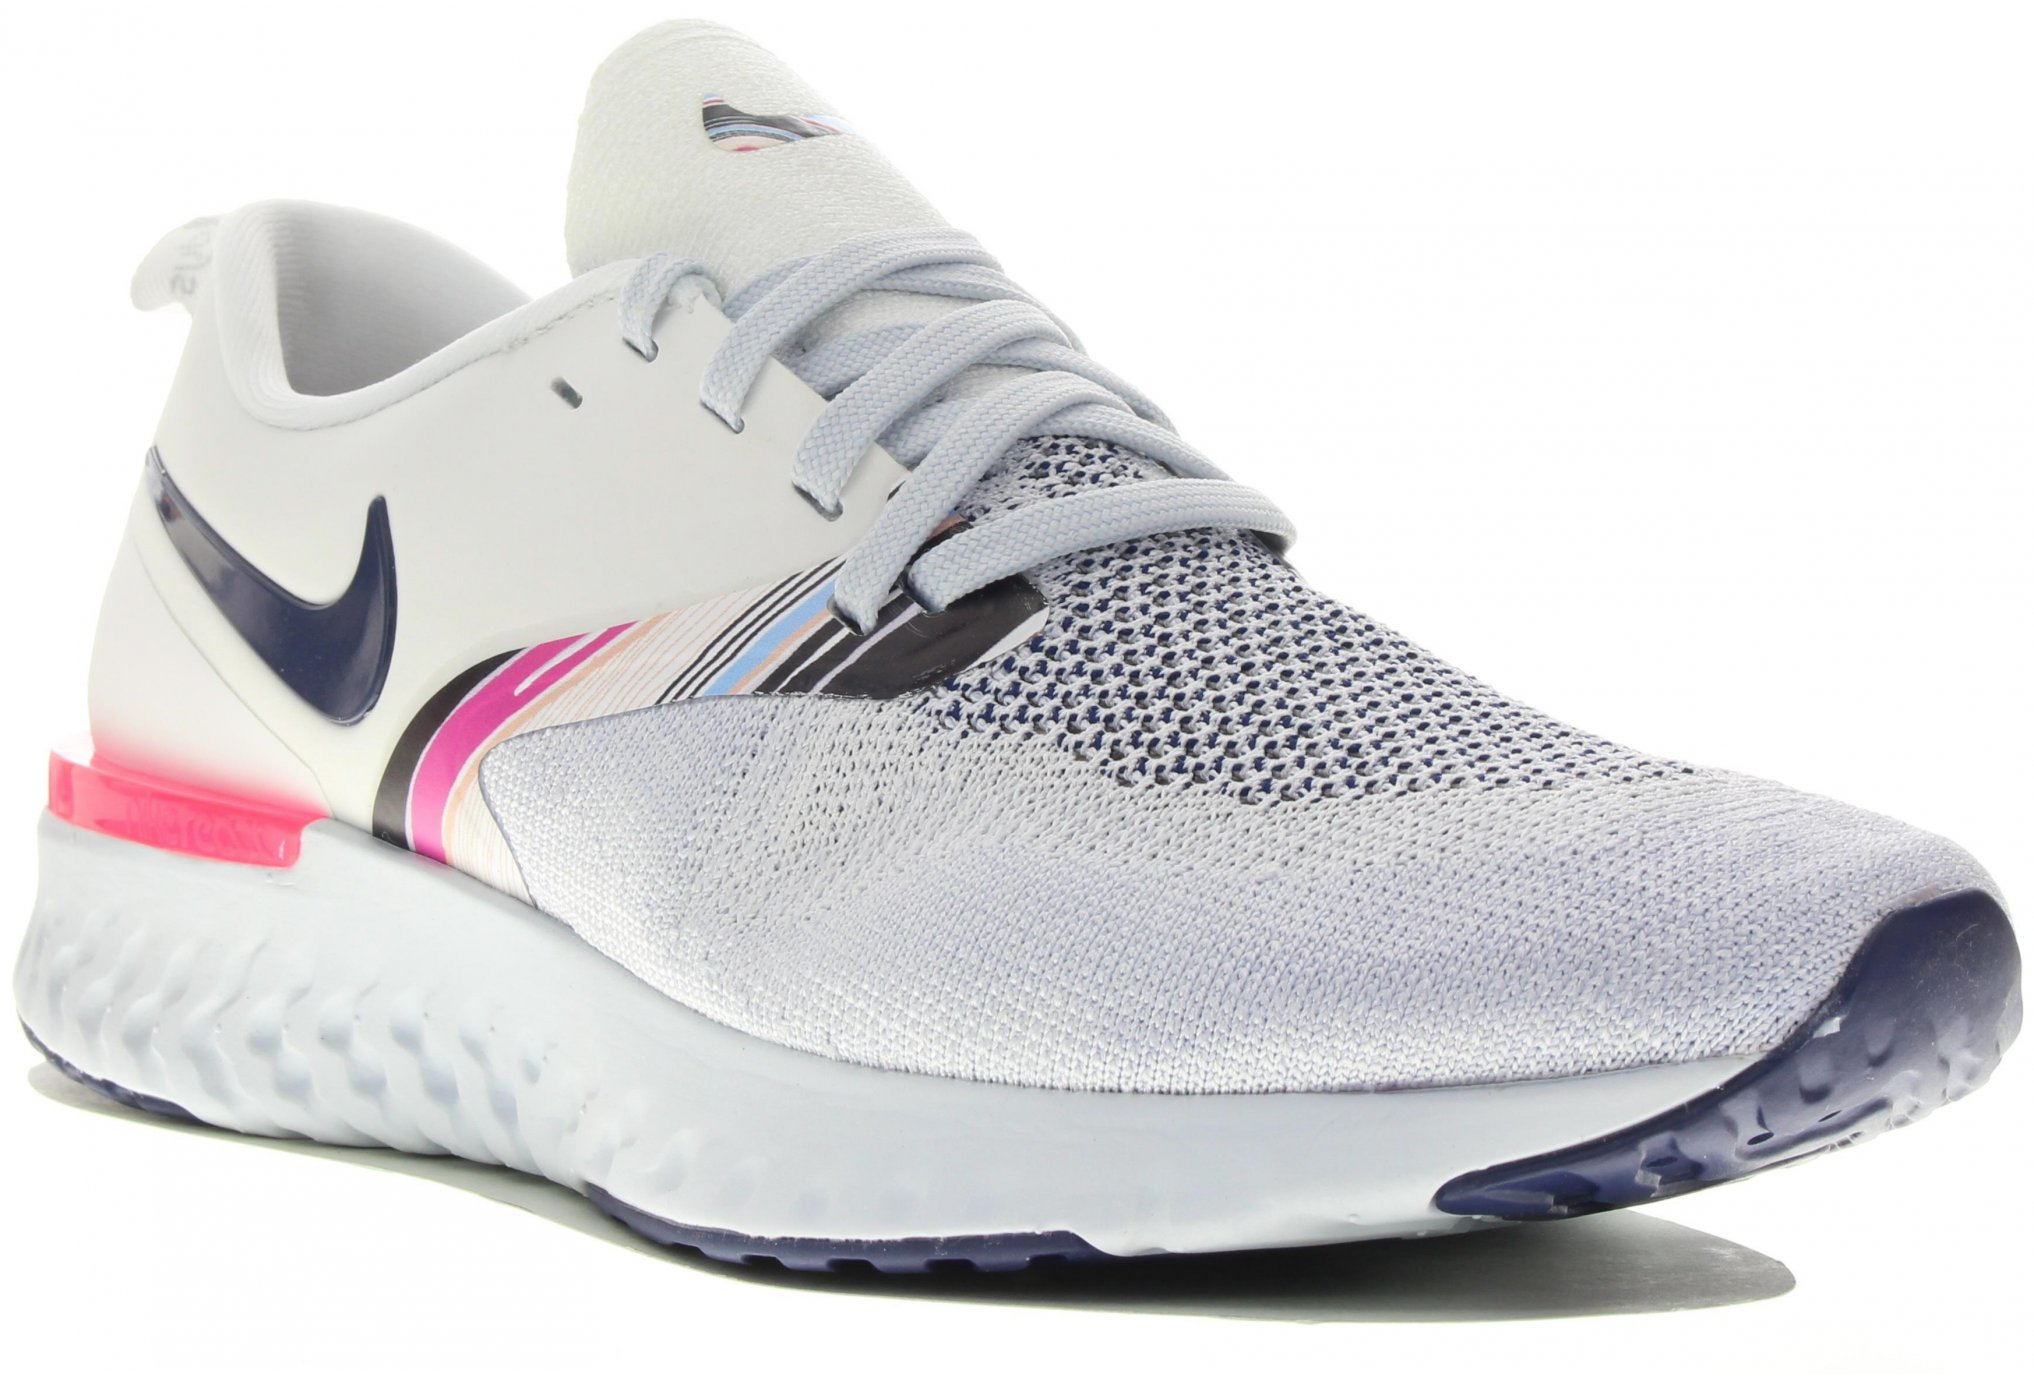 Nike Odyssey React Flyknit 2 PRM W Chaussures running femme